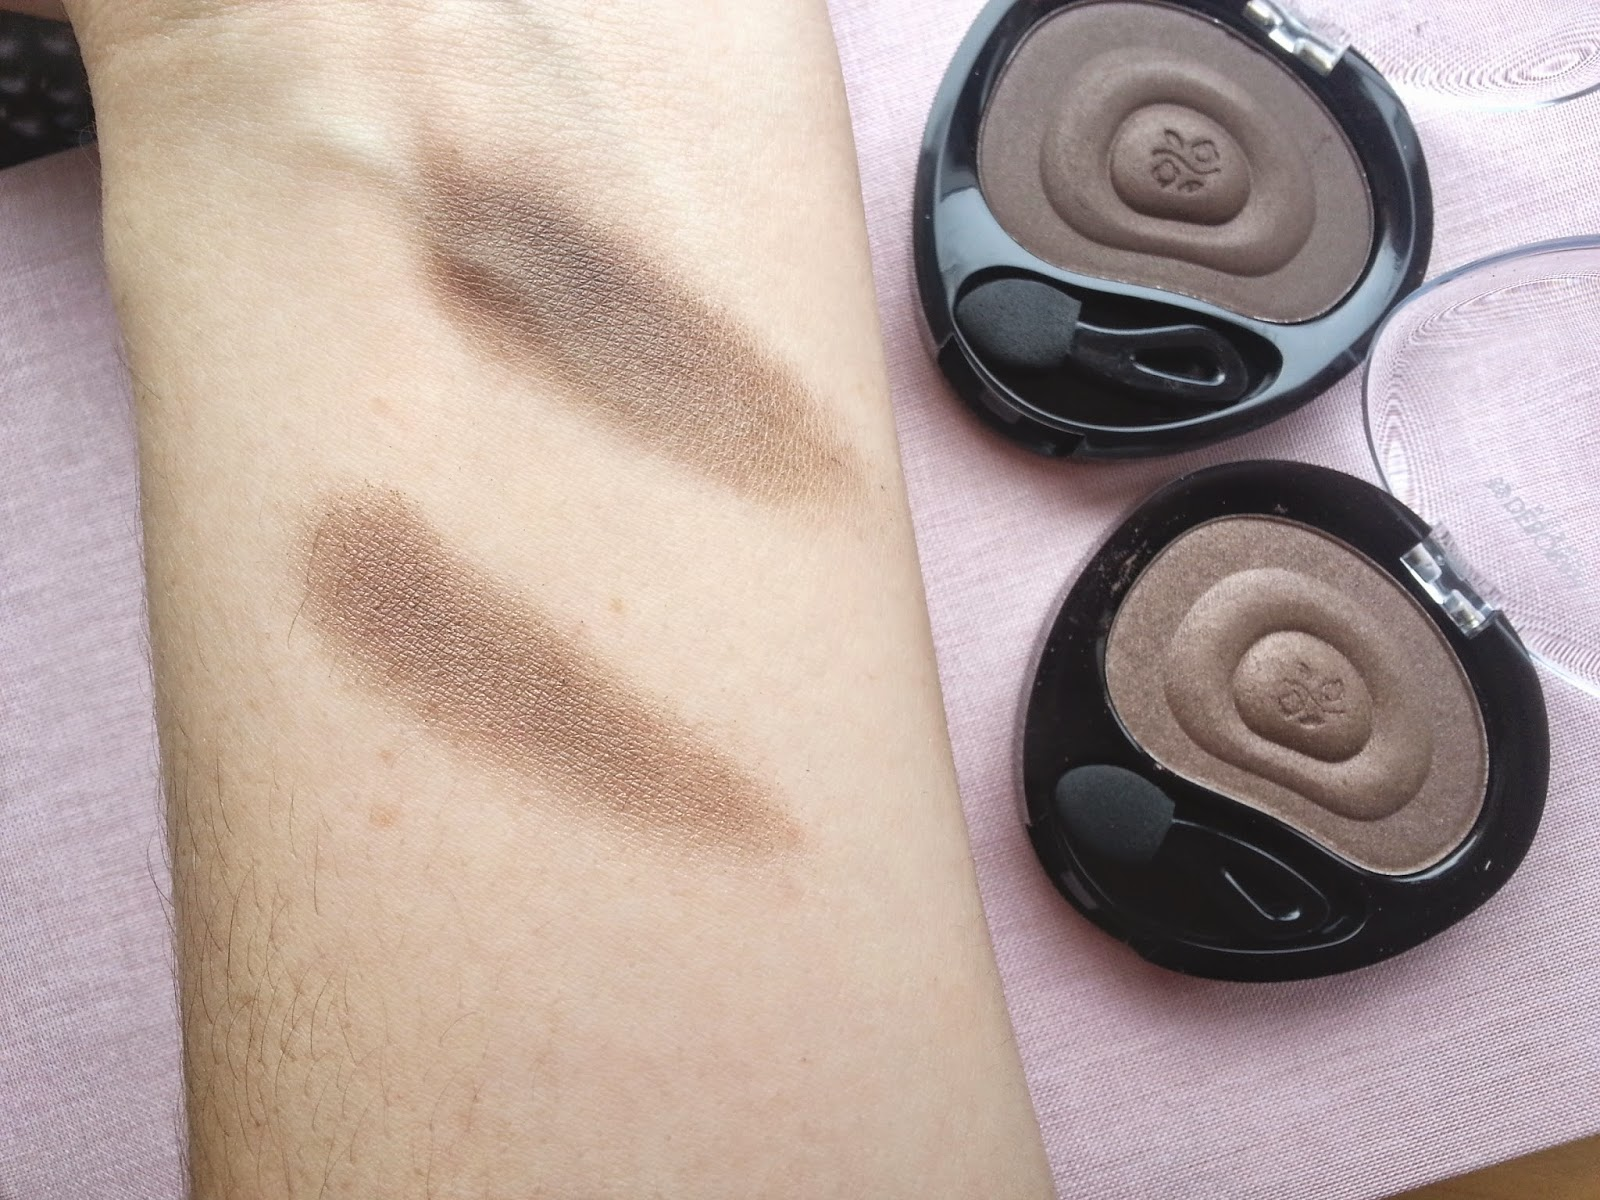 Deborah Milano 24 Ore Velvet Eyeshadow Swatch Review